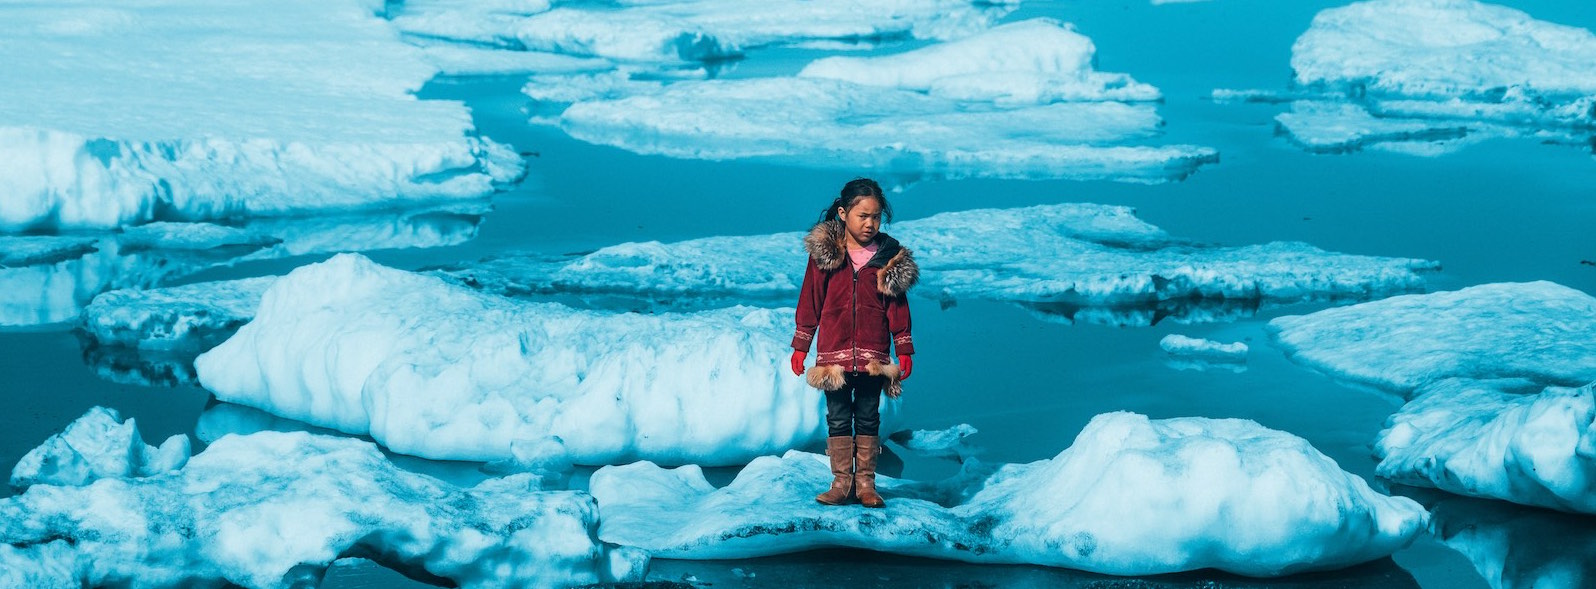 Iñupiat girl Amaia, 11, standing on a ice floe on a shore of the Arctic Ocean in Barrow, Alaska in the United States of America. The anomalous melting of the Arctic ice is one of the many effects of global warming.